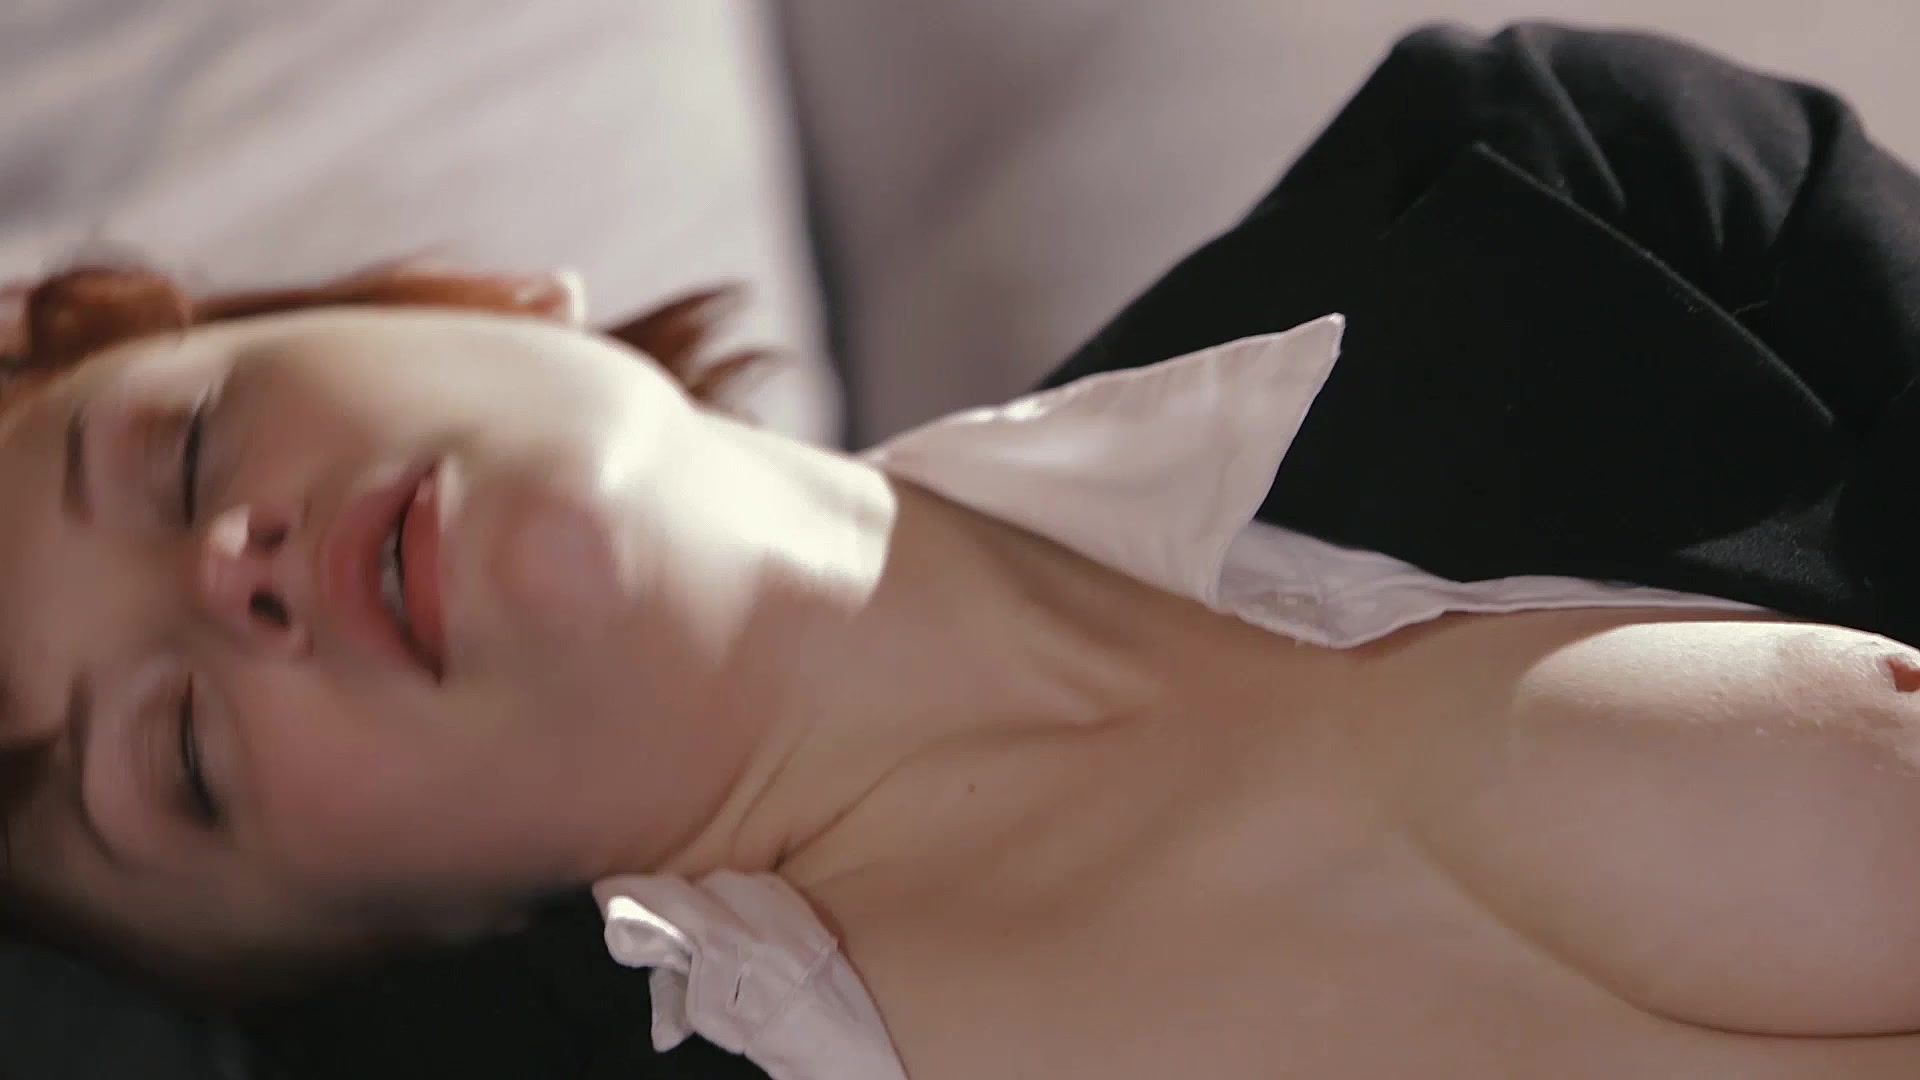 Scene with Bree Daniels and Sara Luvv - image 15 out of 20